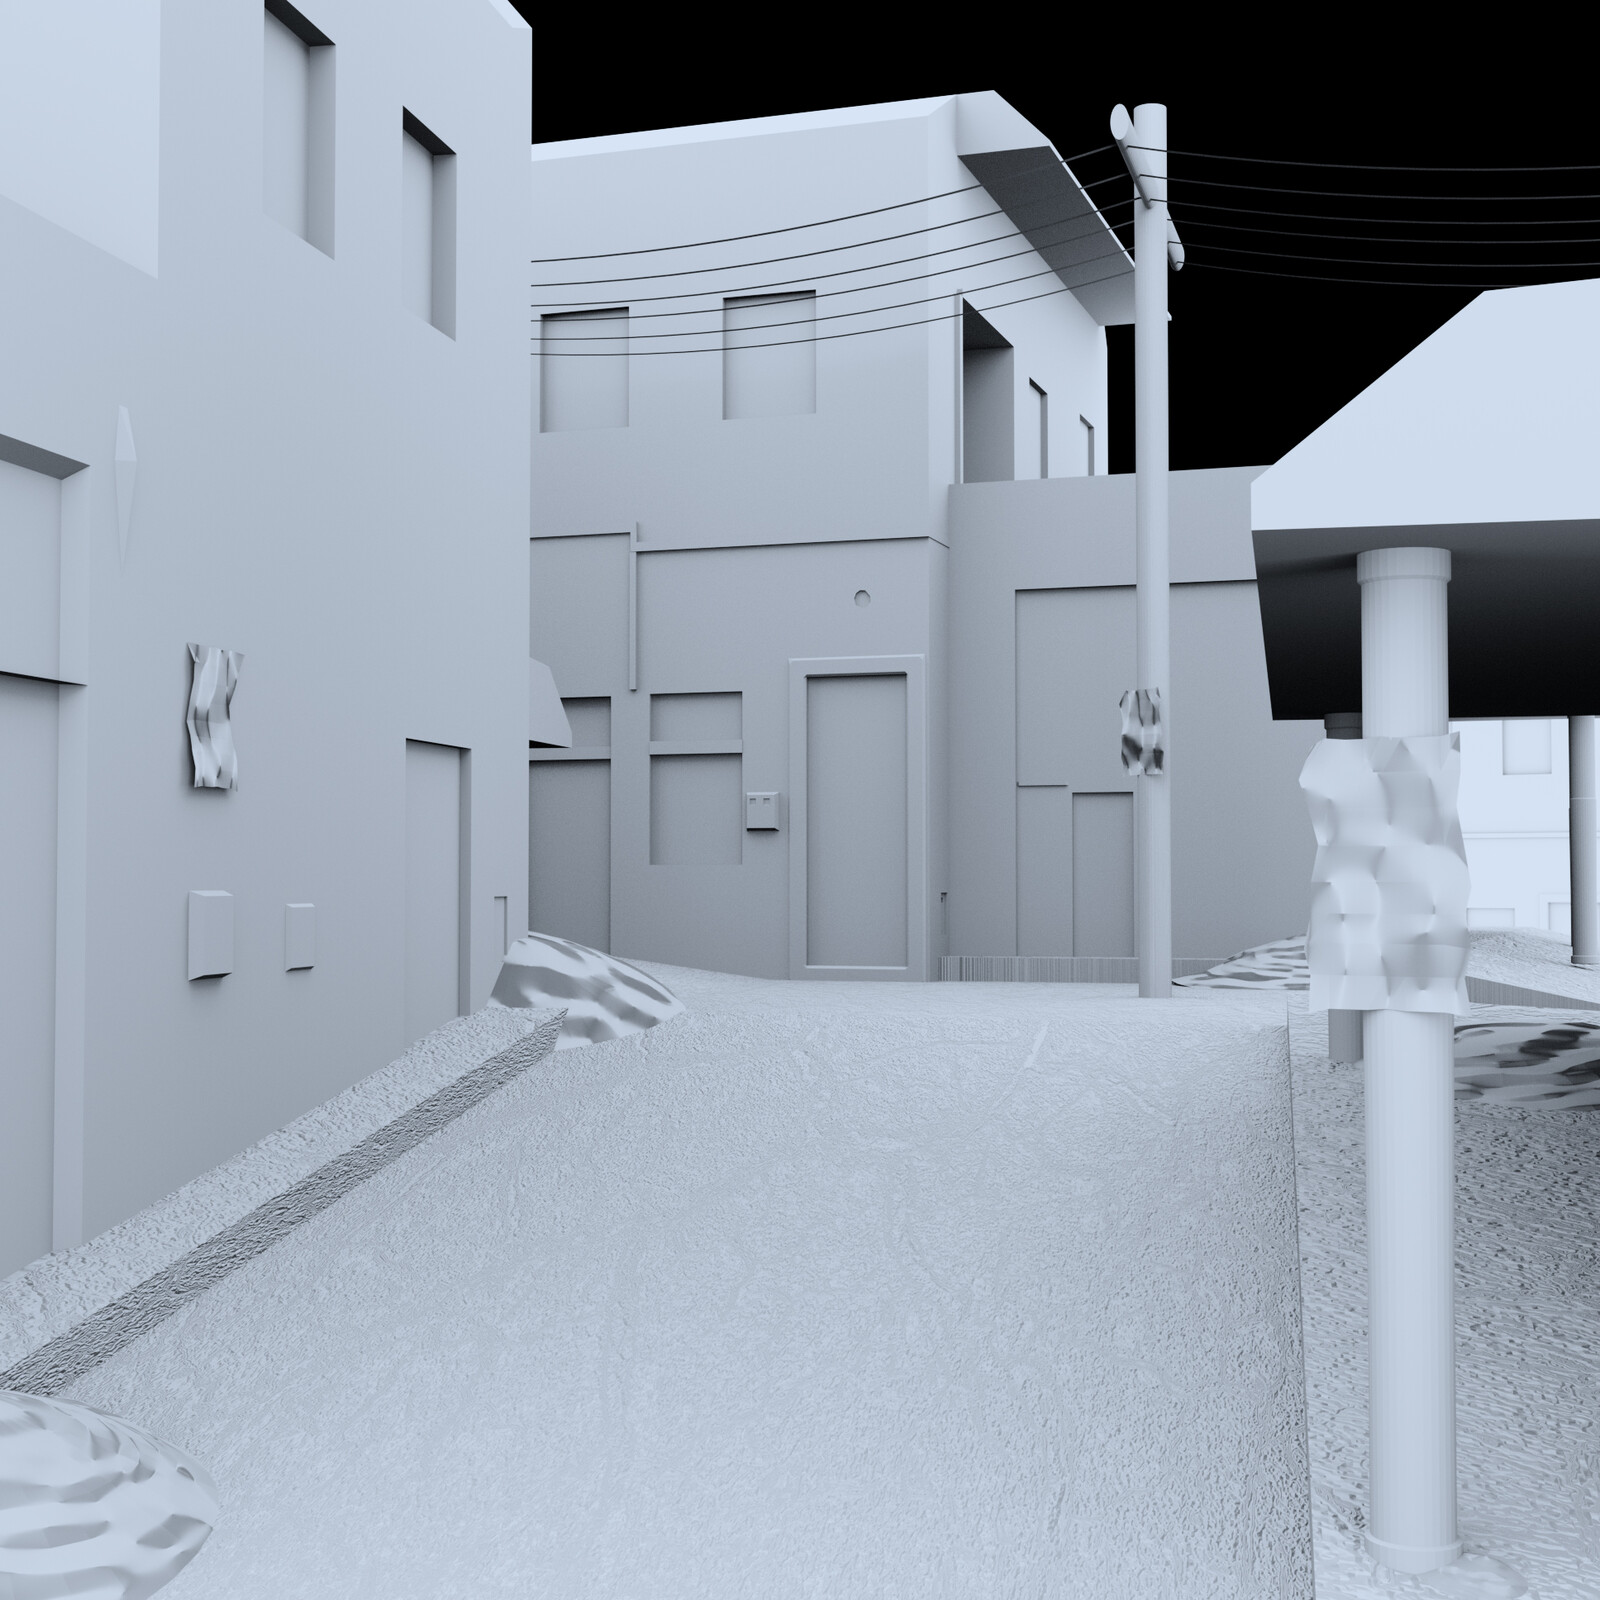 Ambient Occlusion Map